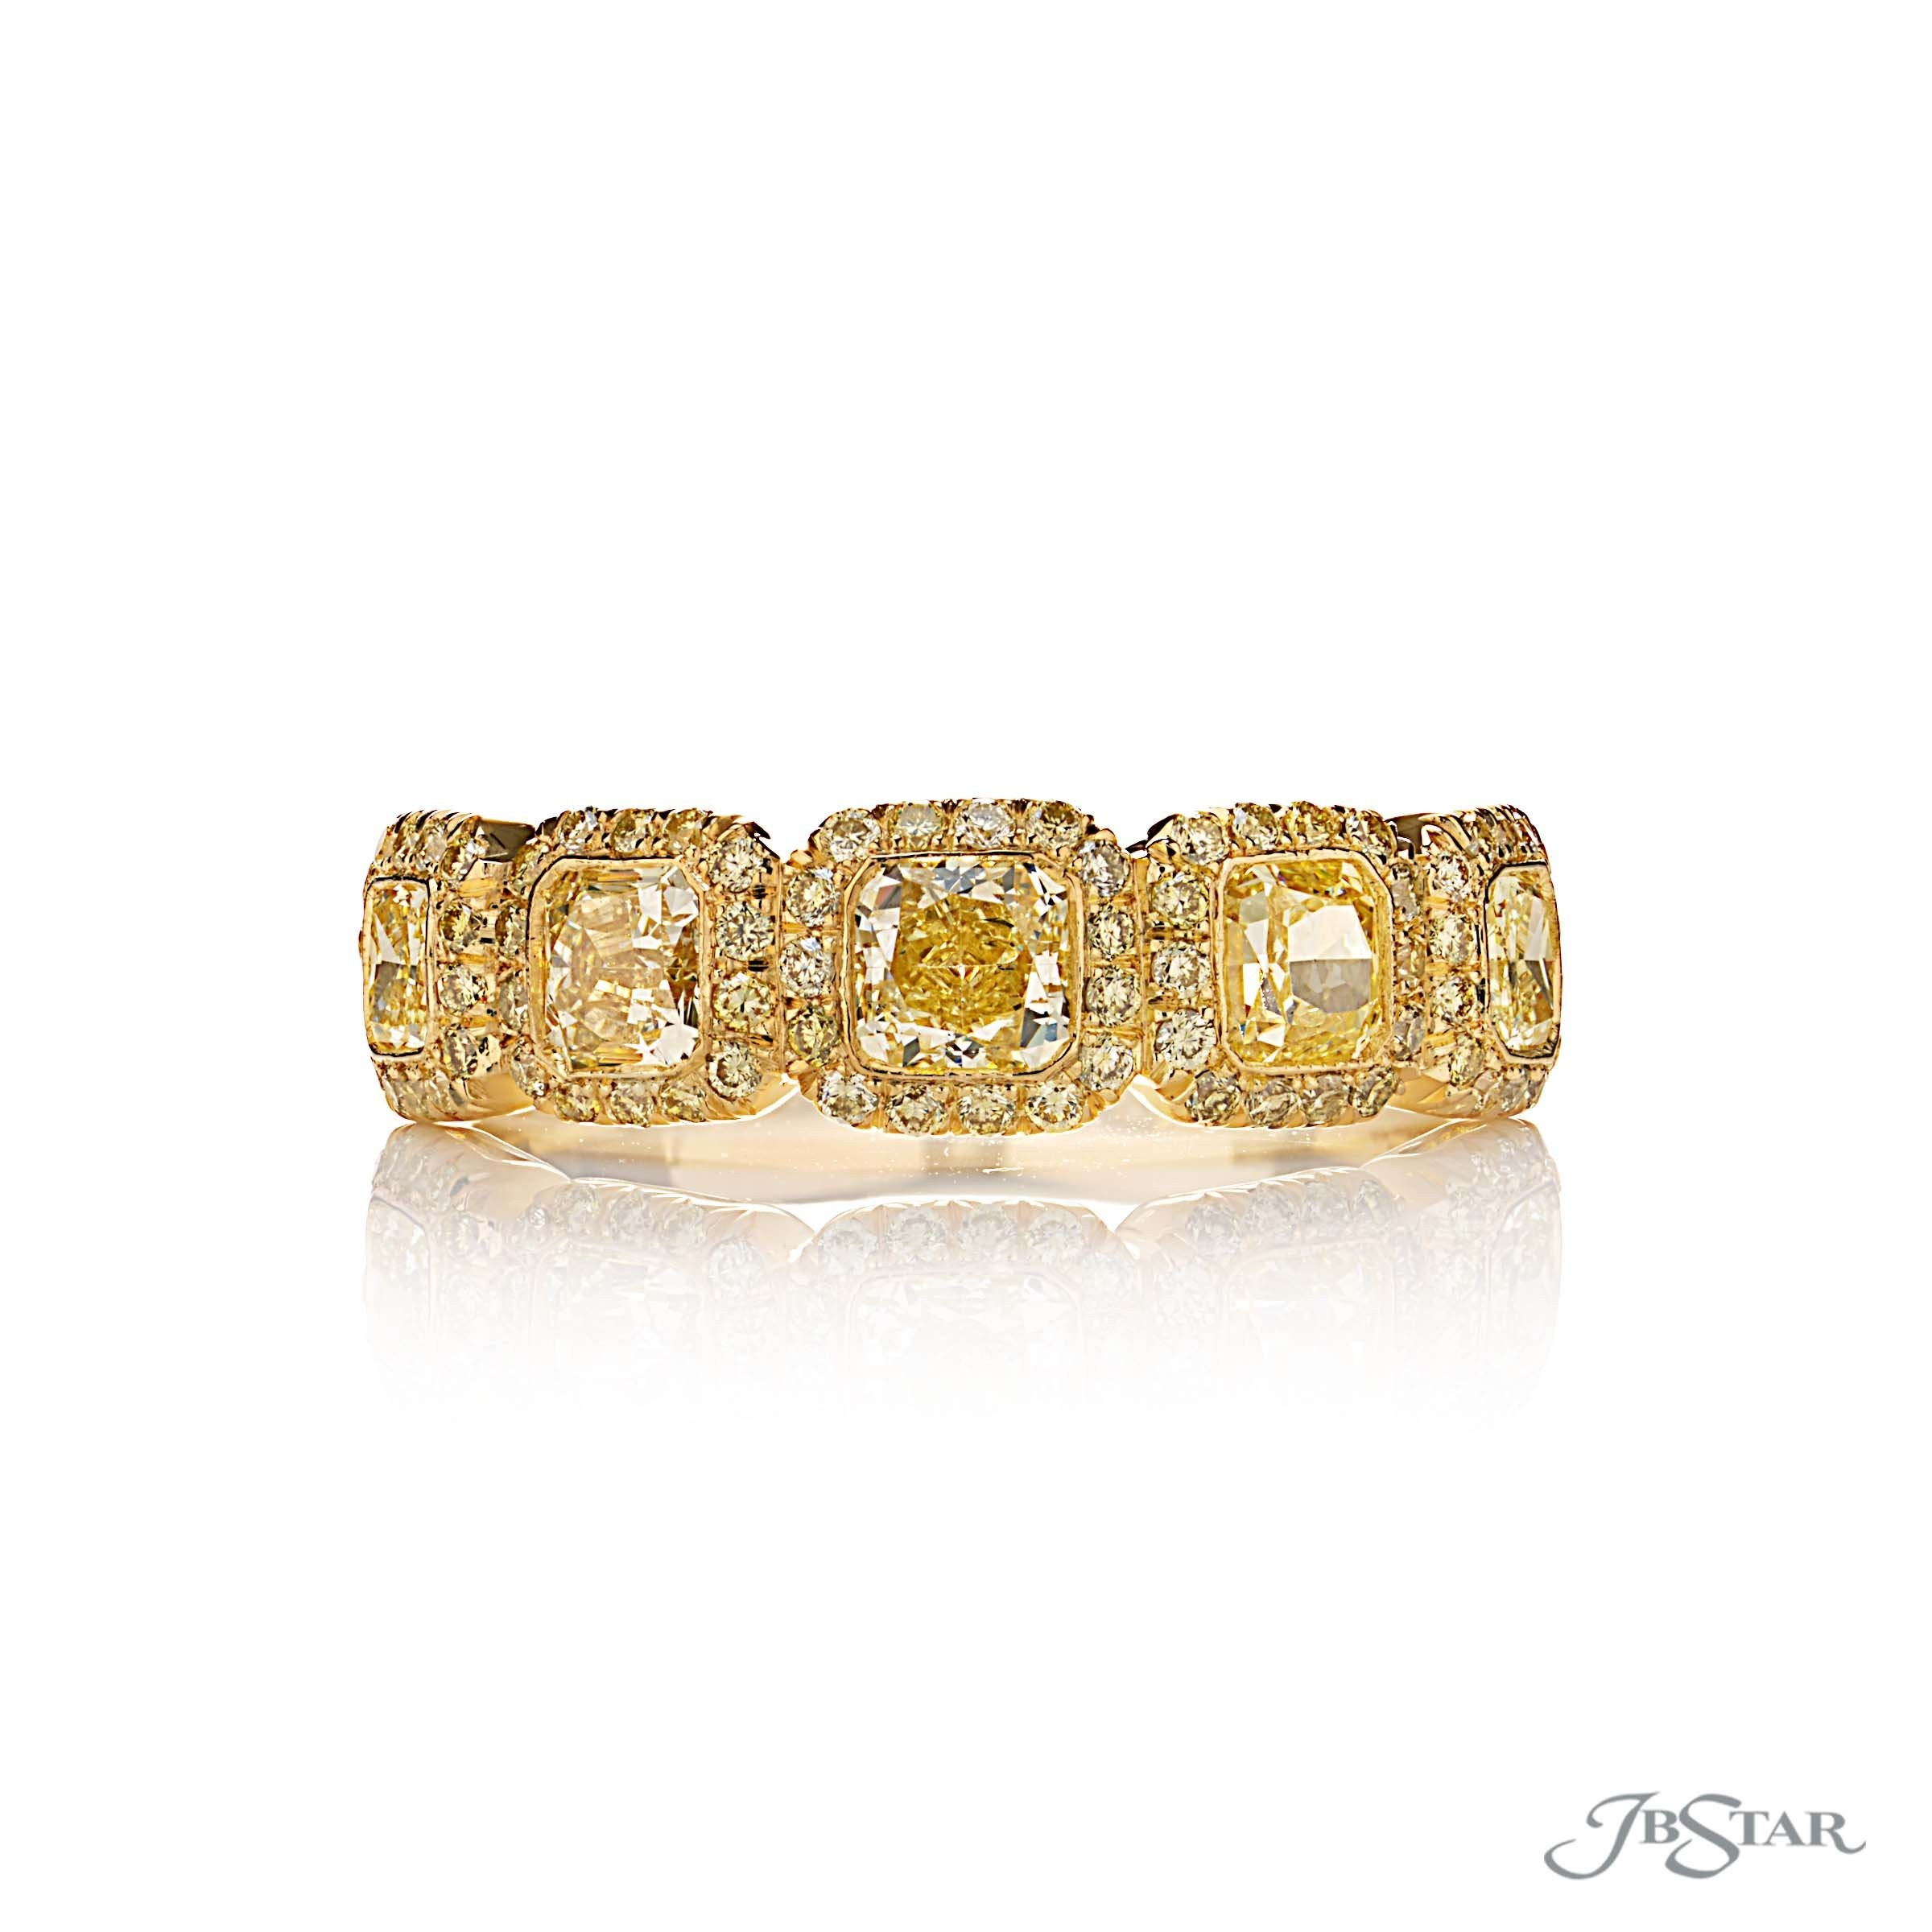 Beautiful Fancy Yellow Diamond Band Featuring 5 Fancy Yellow Within Cushion Cut Yellow Diamond Micropavé Rings (View 17 of 25)